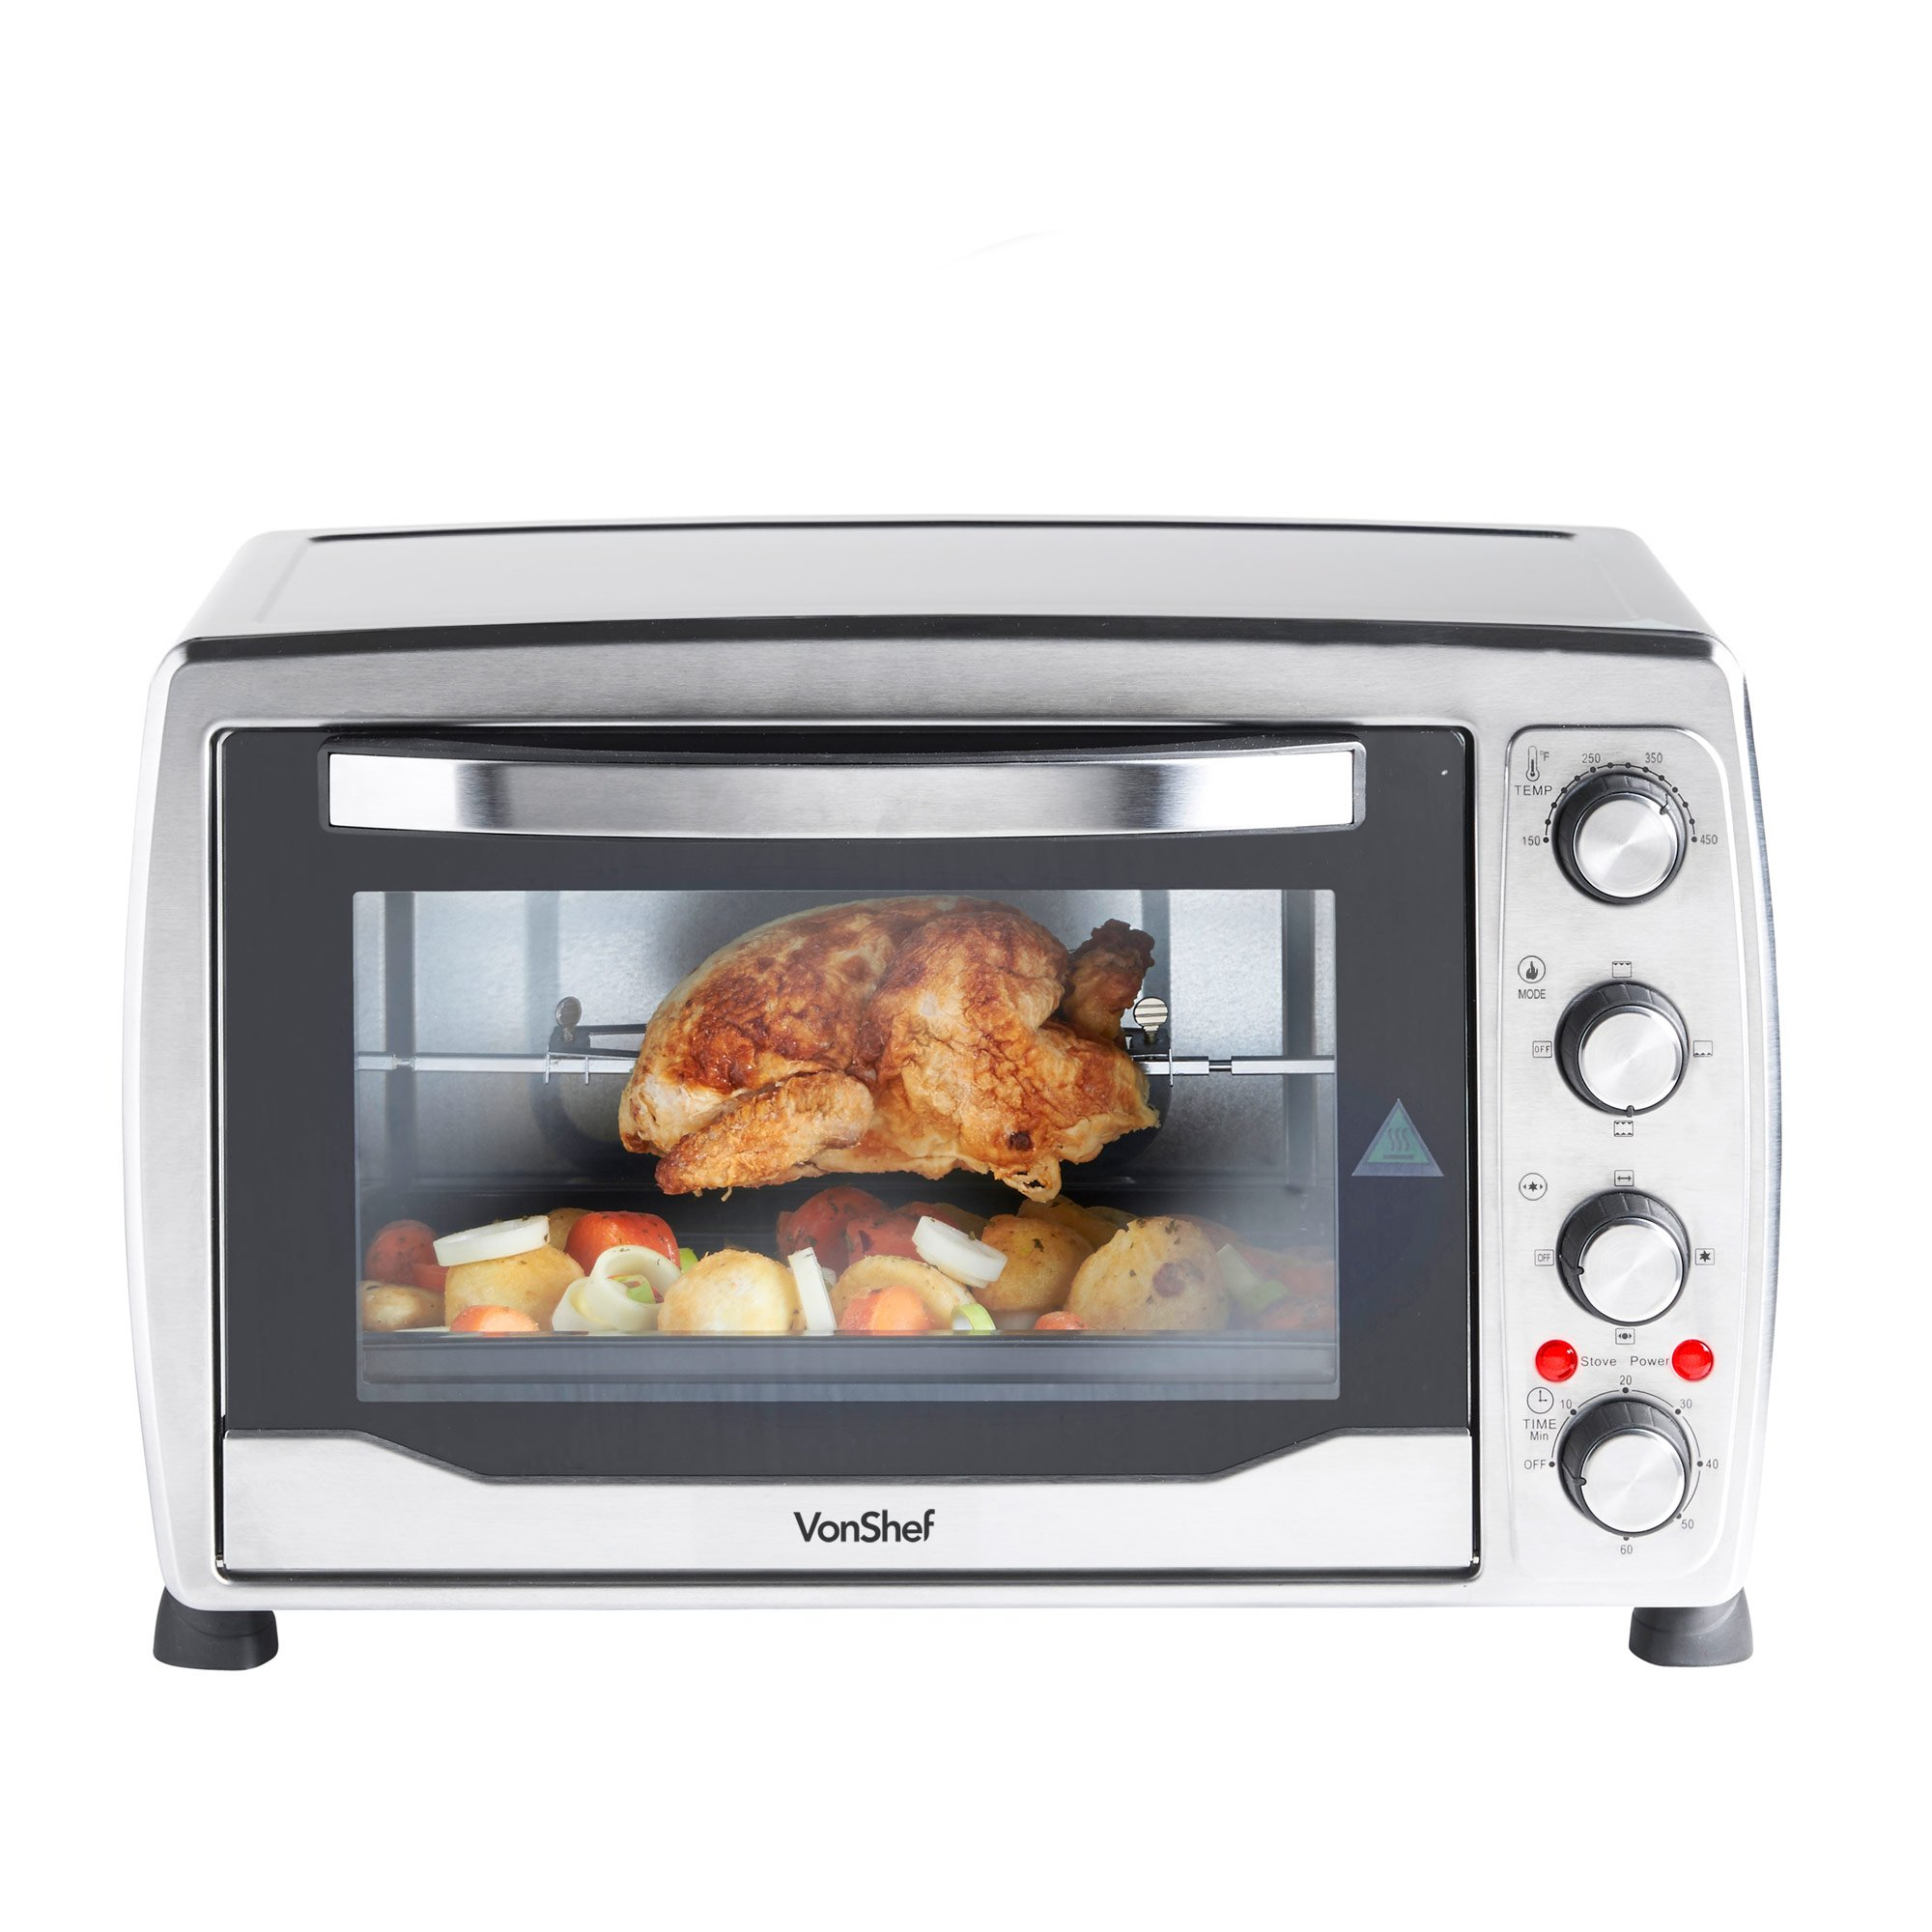 VonShef Large 31Qt/36L Convection Countertop Toaster Mini Oven, Grill & Rotisserie - includes Baking Tray & Wire Rack